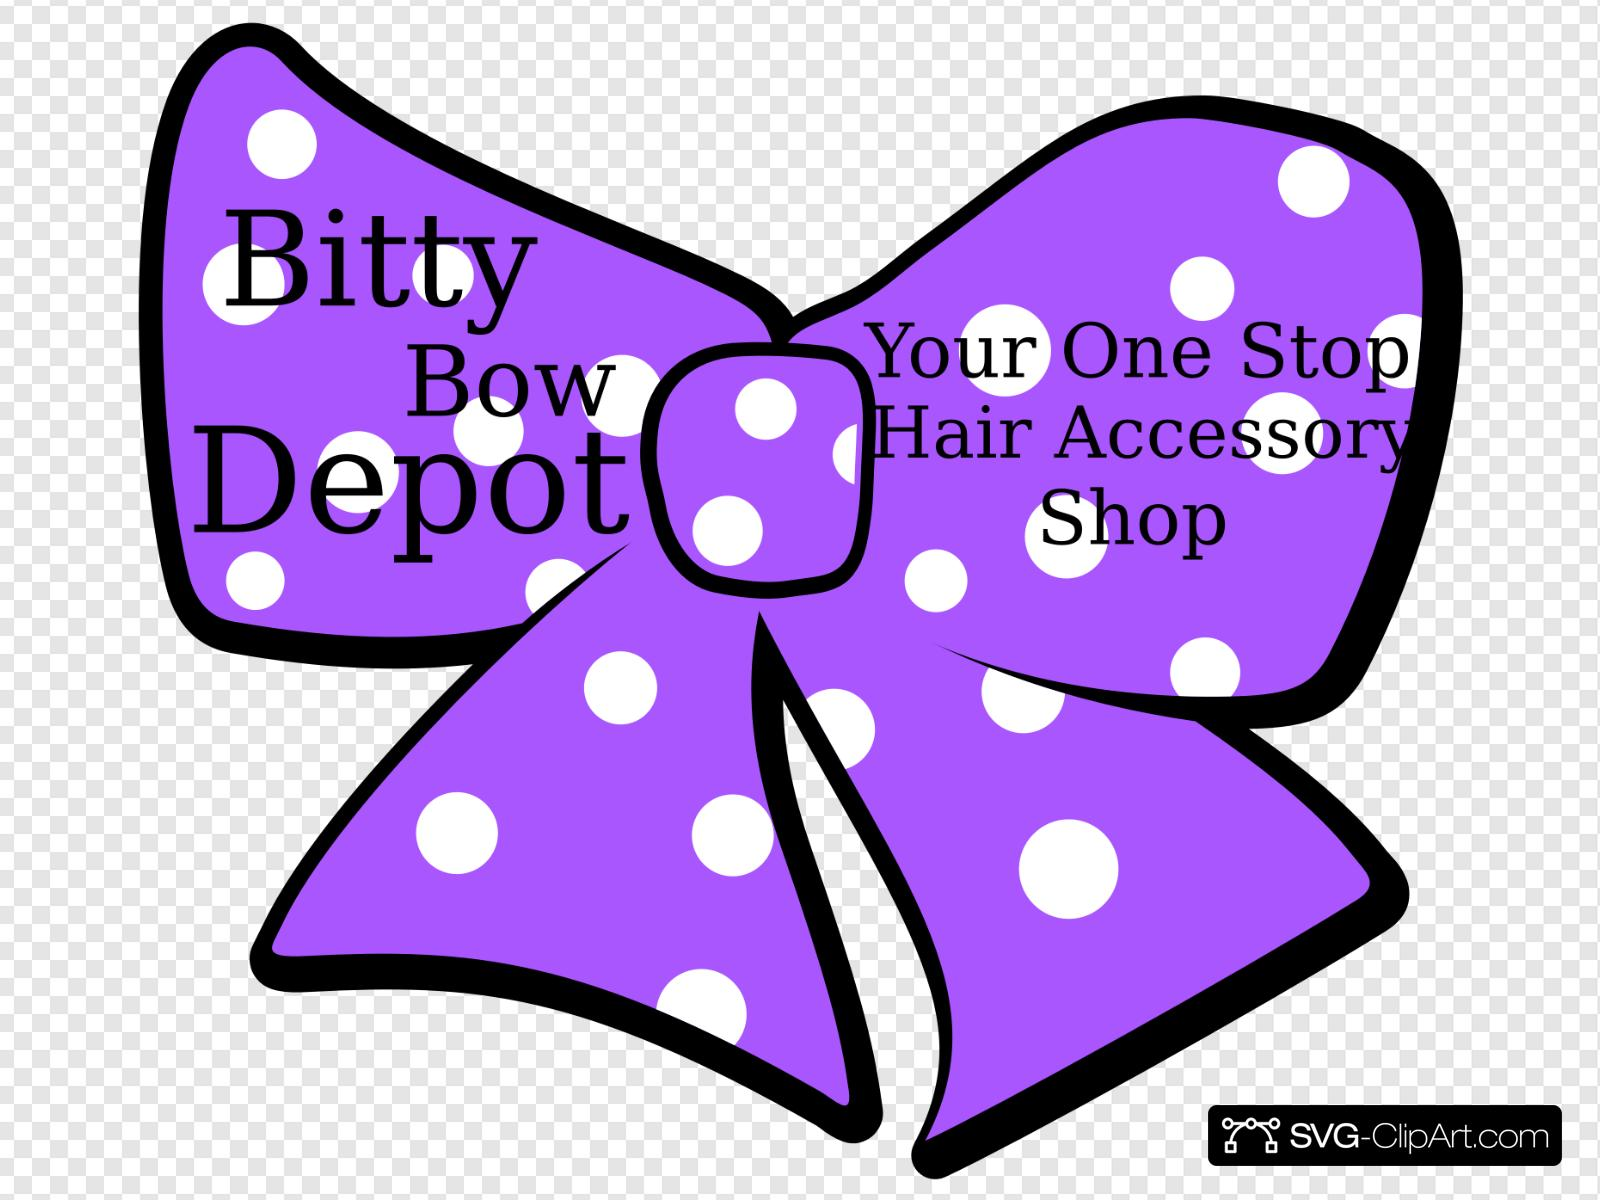 Sogan clipart clipart free download Bow With Polka Dots, Company Name And Slogan Clip art, Icon ... clipart free download